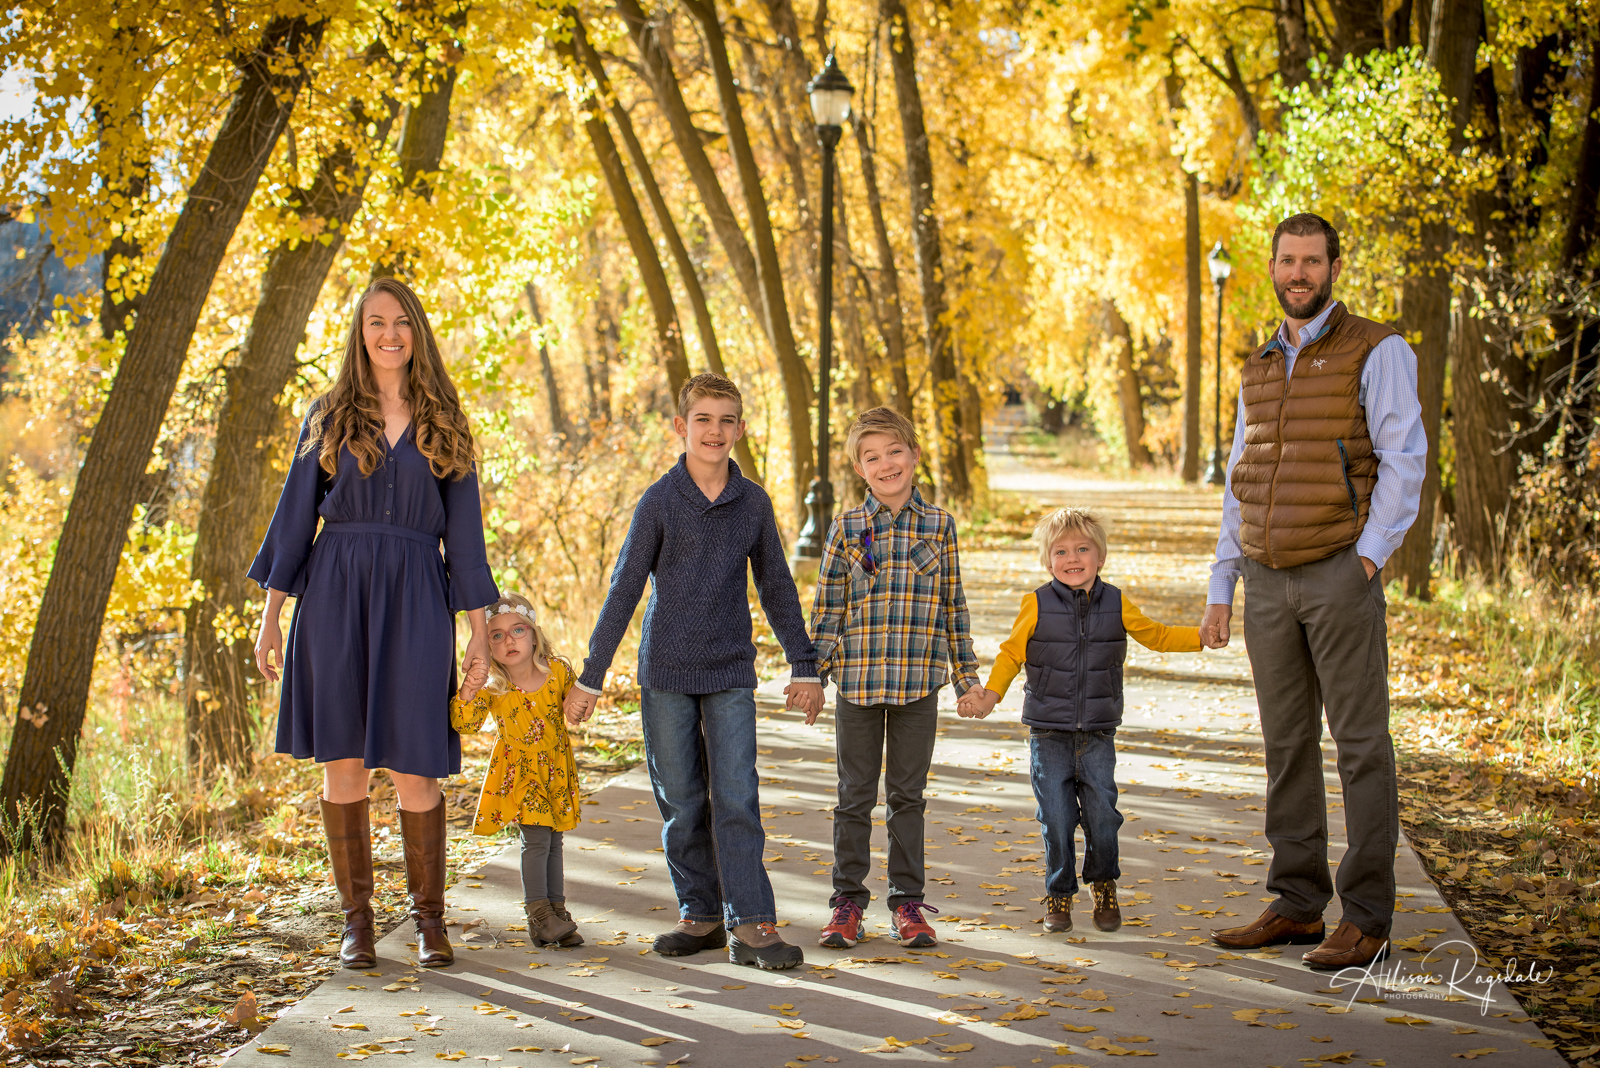 Family Photography Studios in Durango